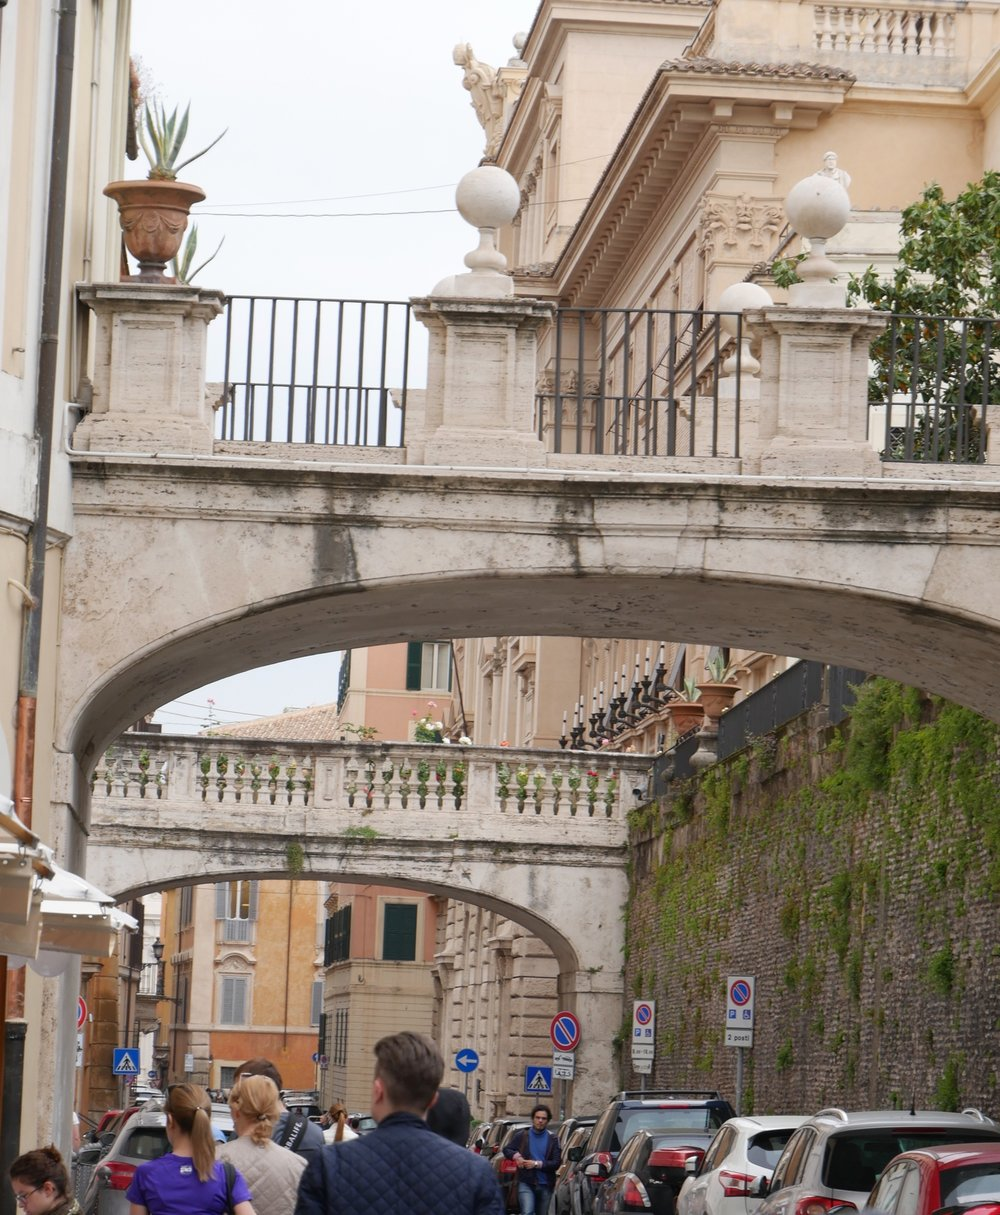 Walking-through-the-streets-in-Rome.jpg